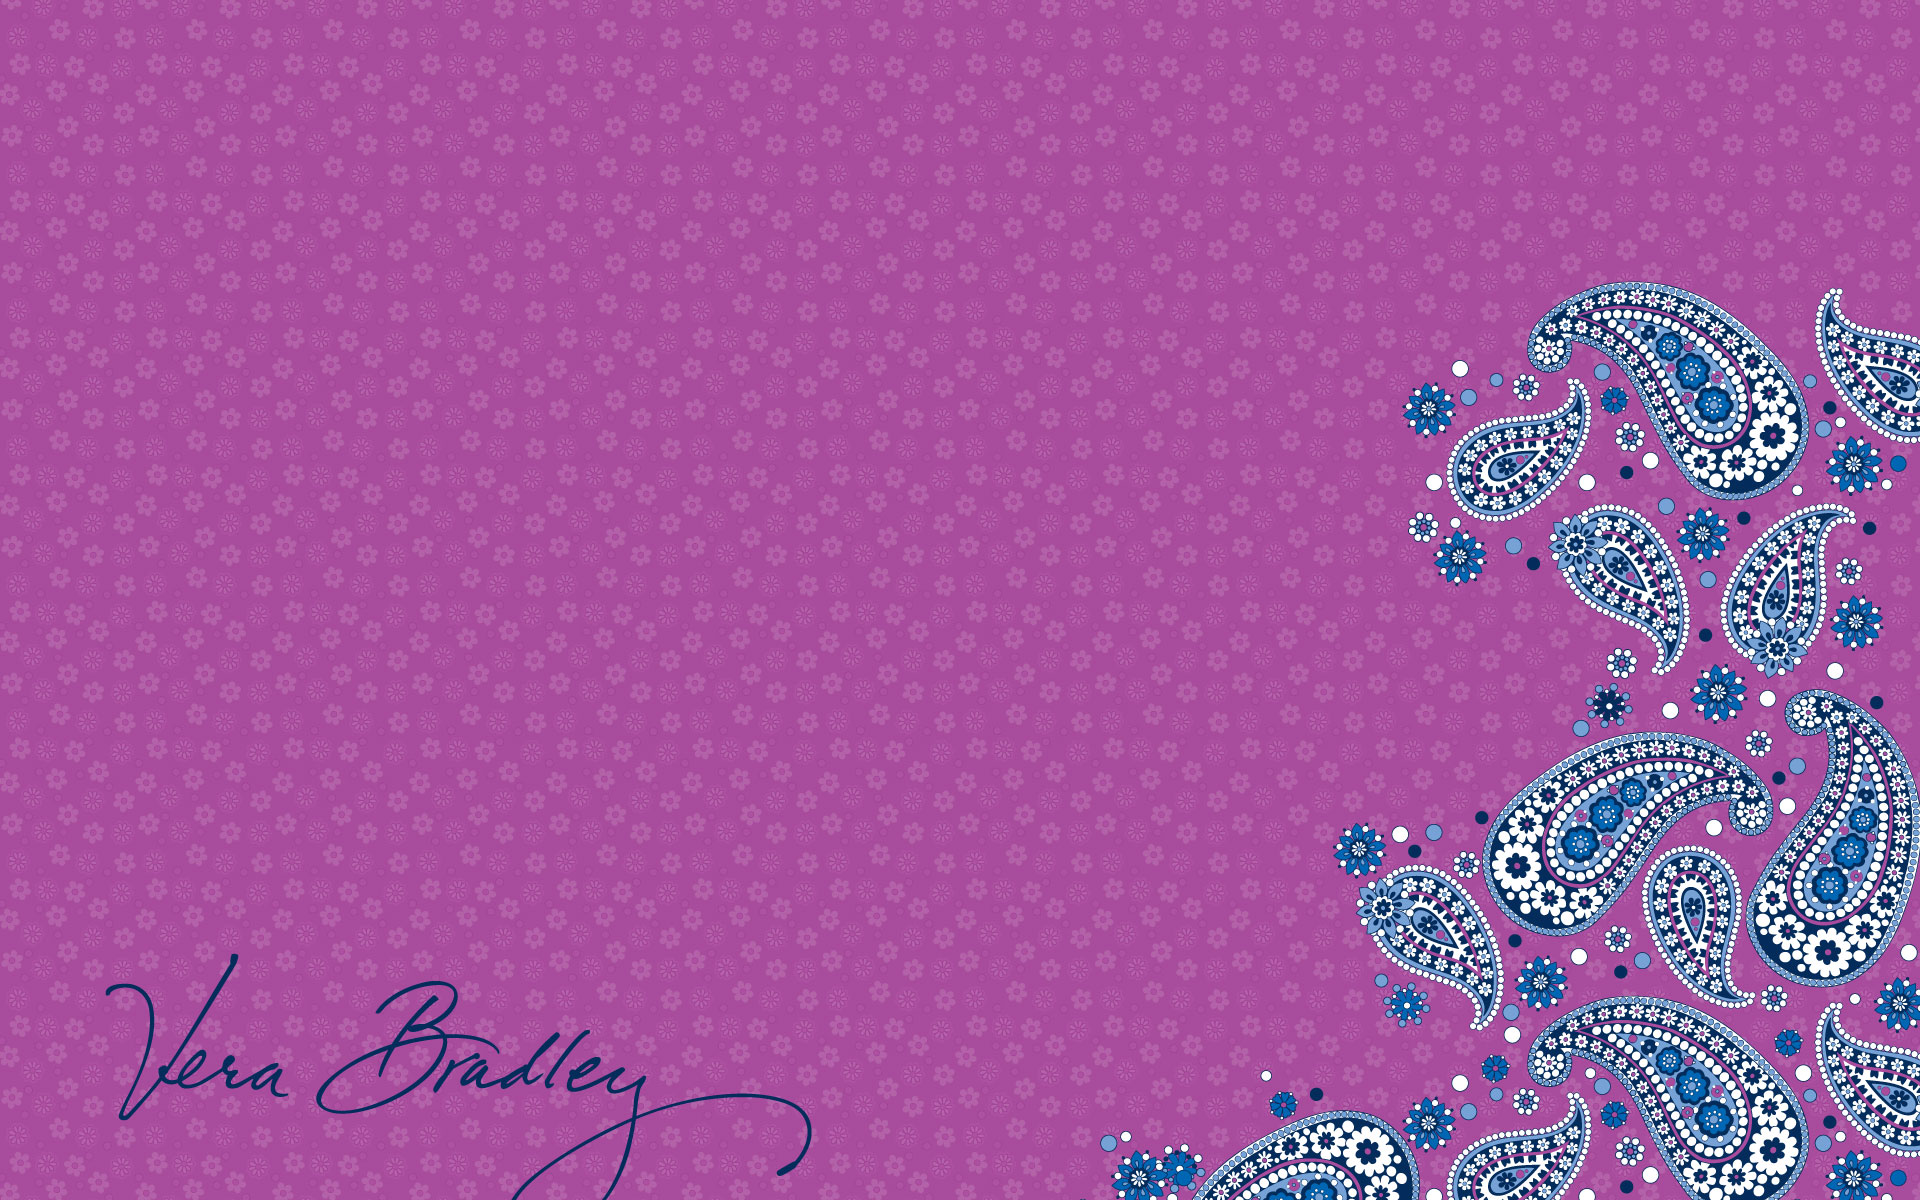 Vb Wallpapers Vera Bradley Wallpaper 35126651 Fanpop